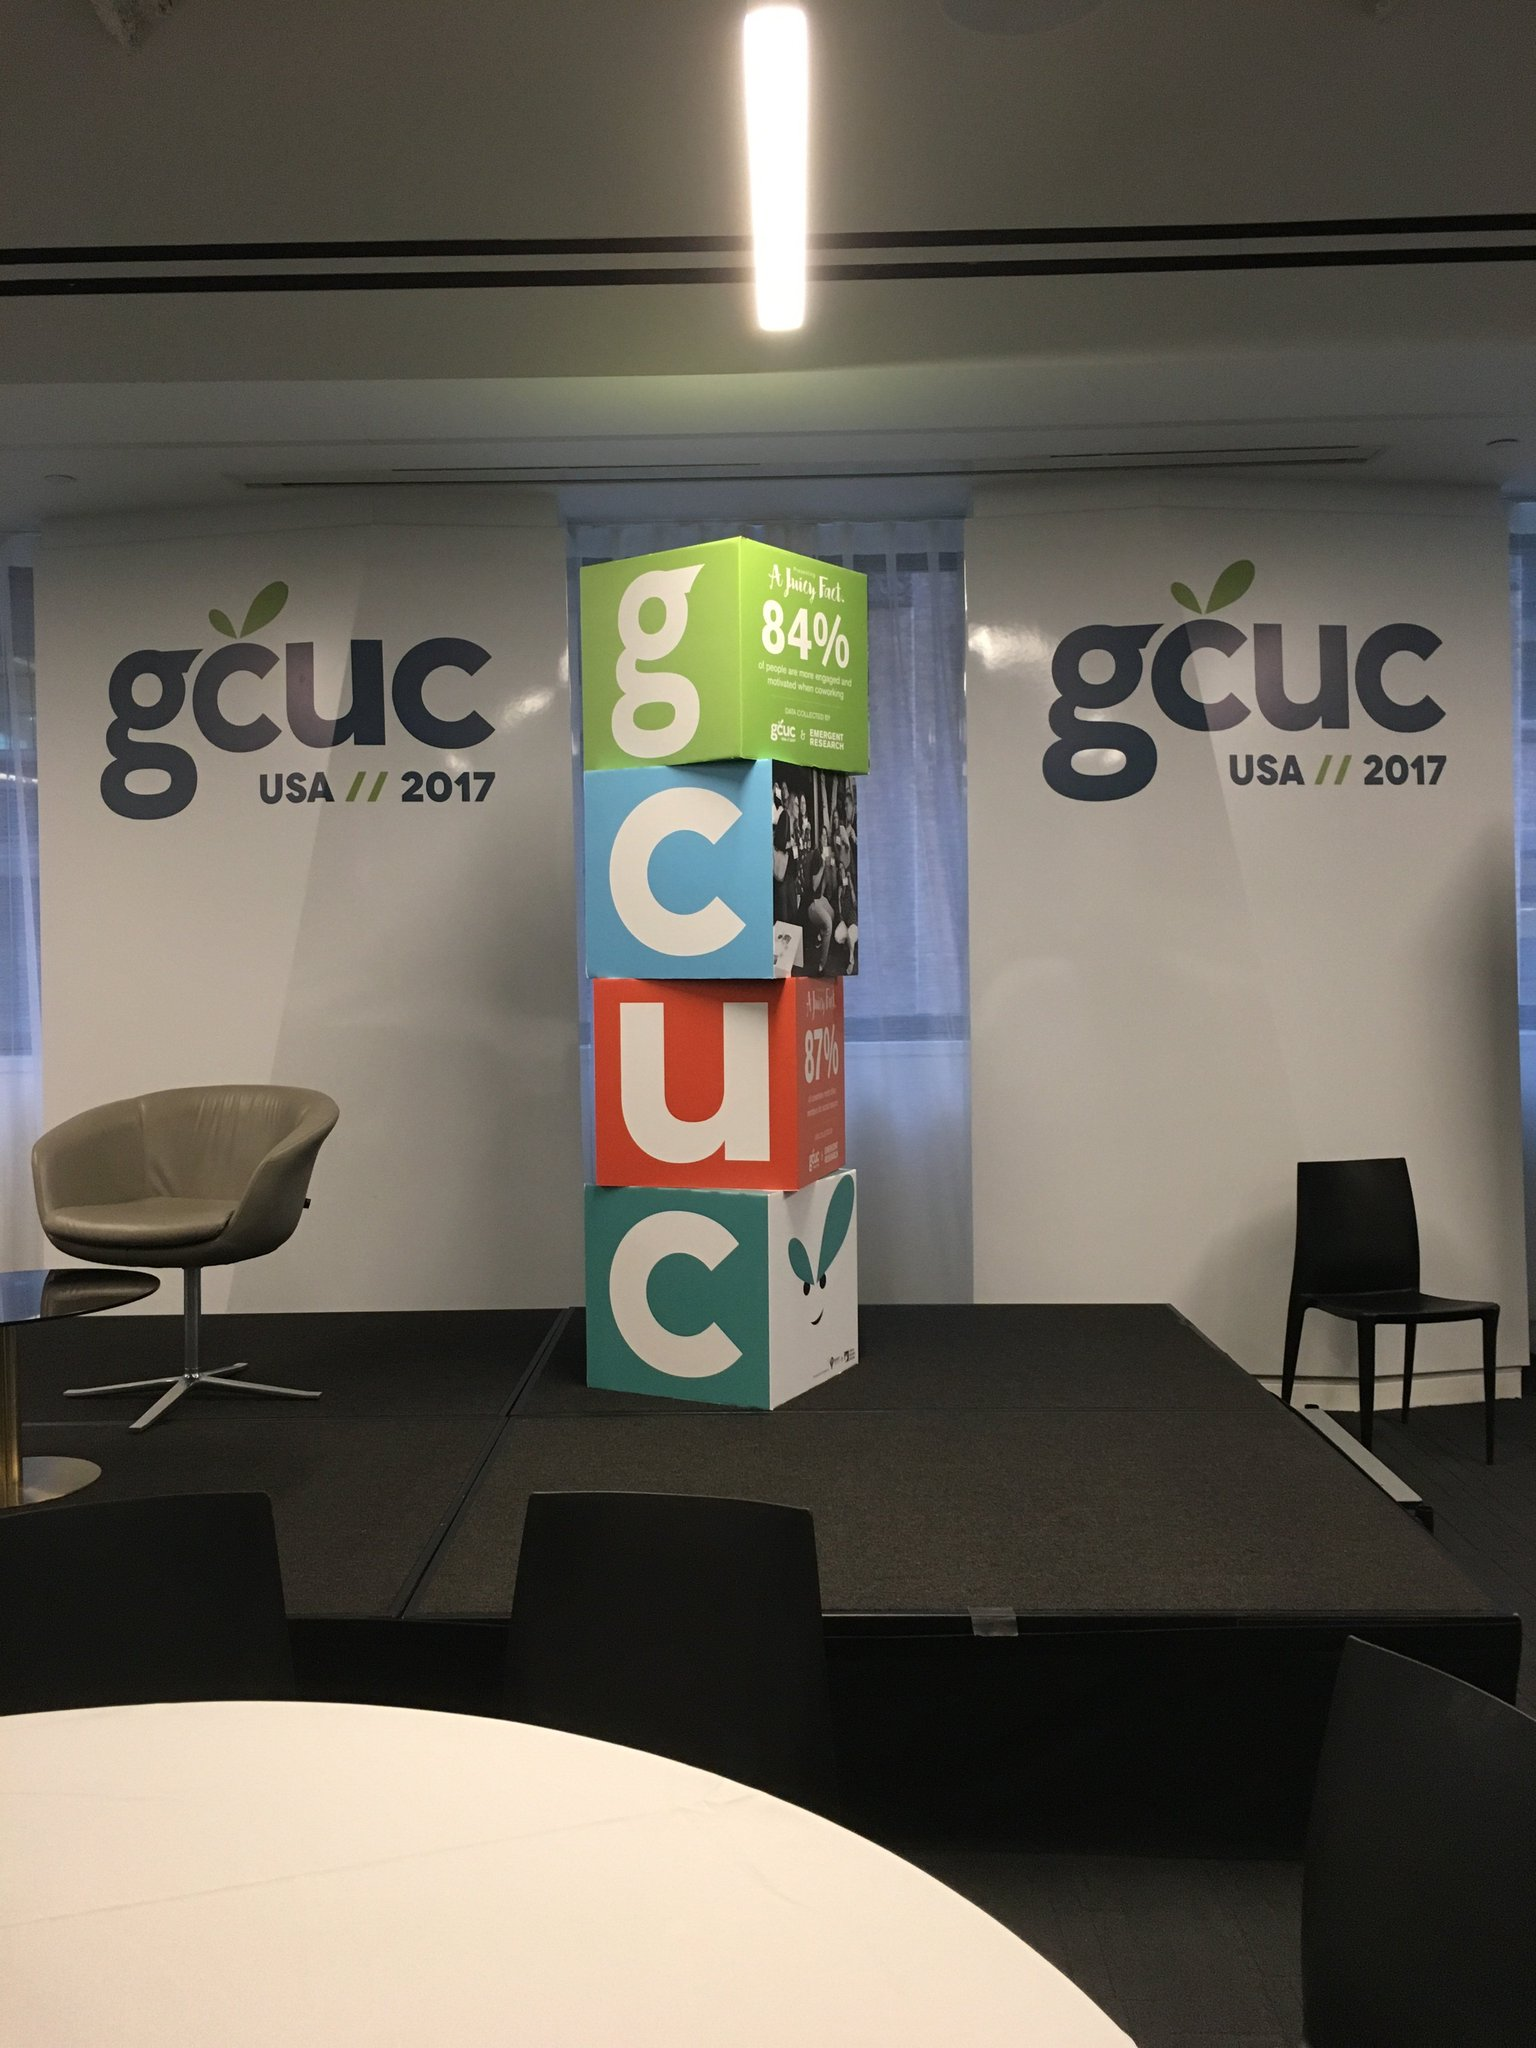 Vi Hub at GCUC last week learning latest coworking trends and getting recognition in opening talk by@Greg_Lindsay  @gcuc @BellWorksNJ https://t.co/slC3qgCYux